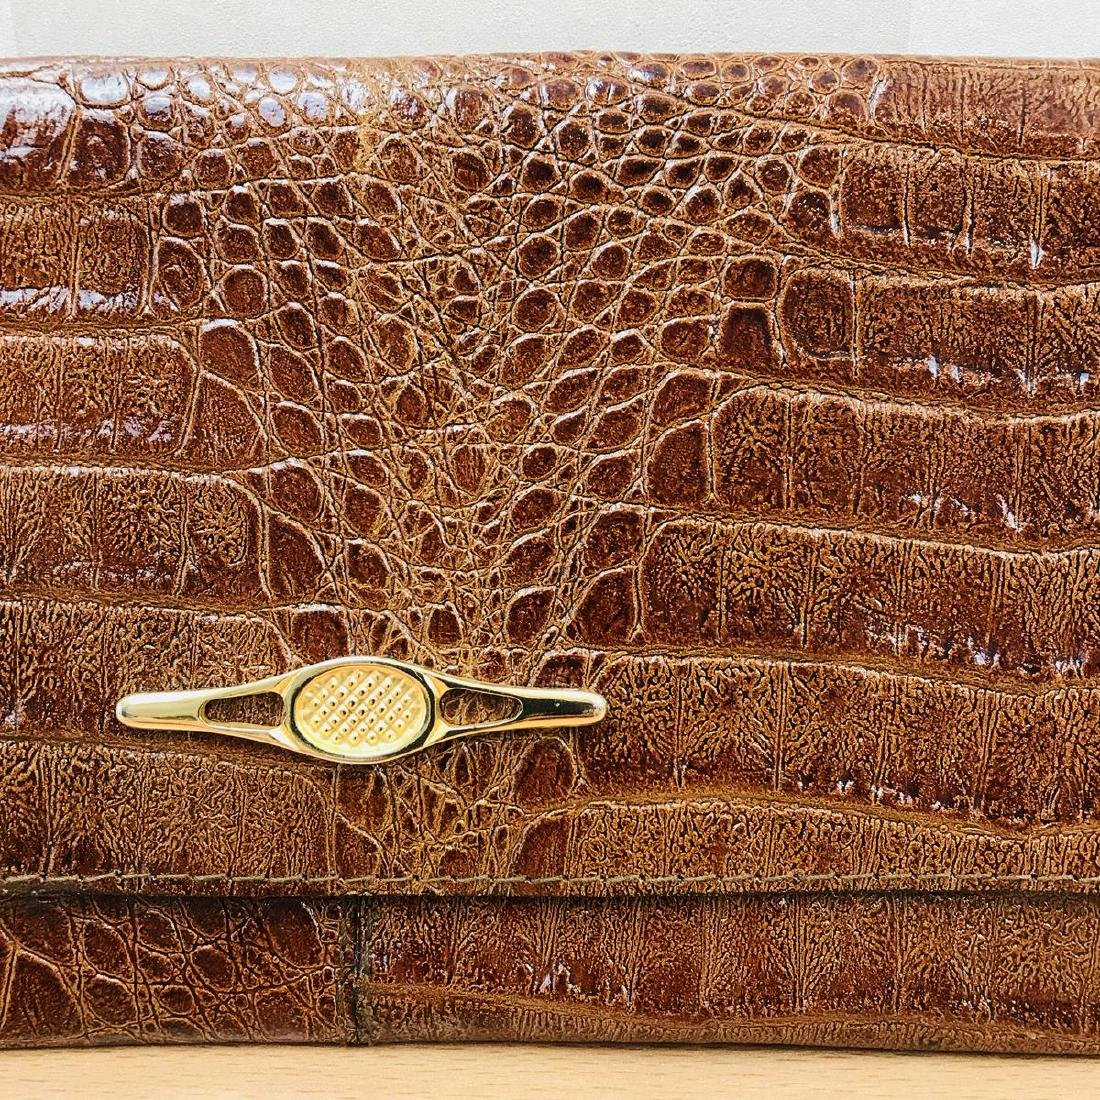 Vintage Crocodile Leather Clutch Bag - 3